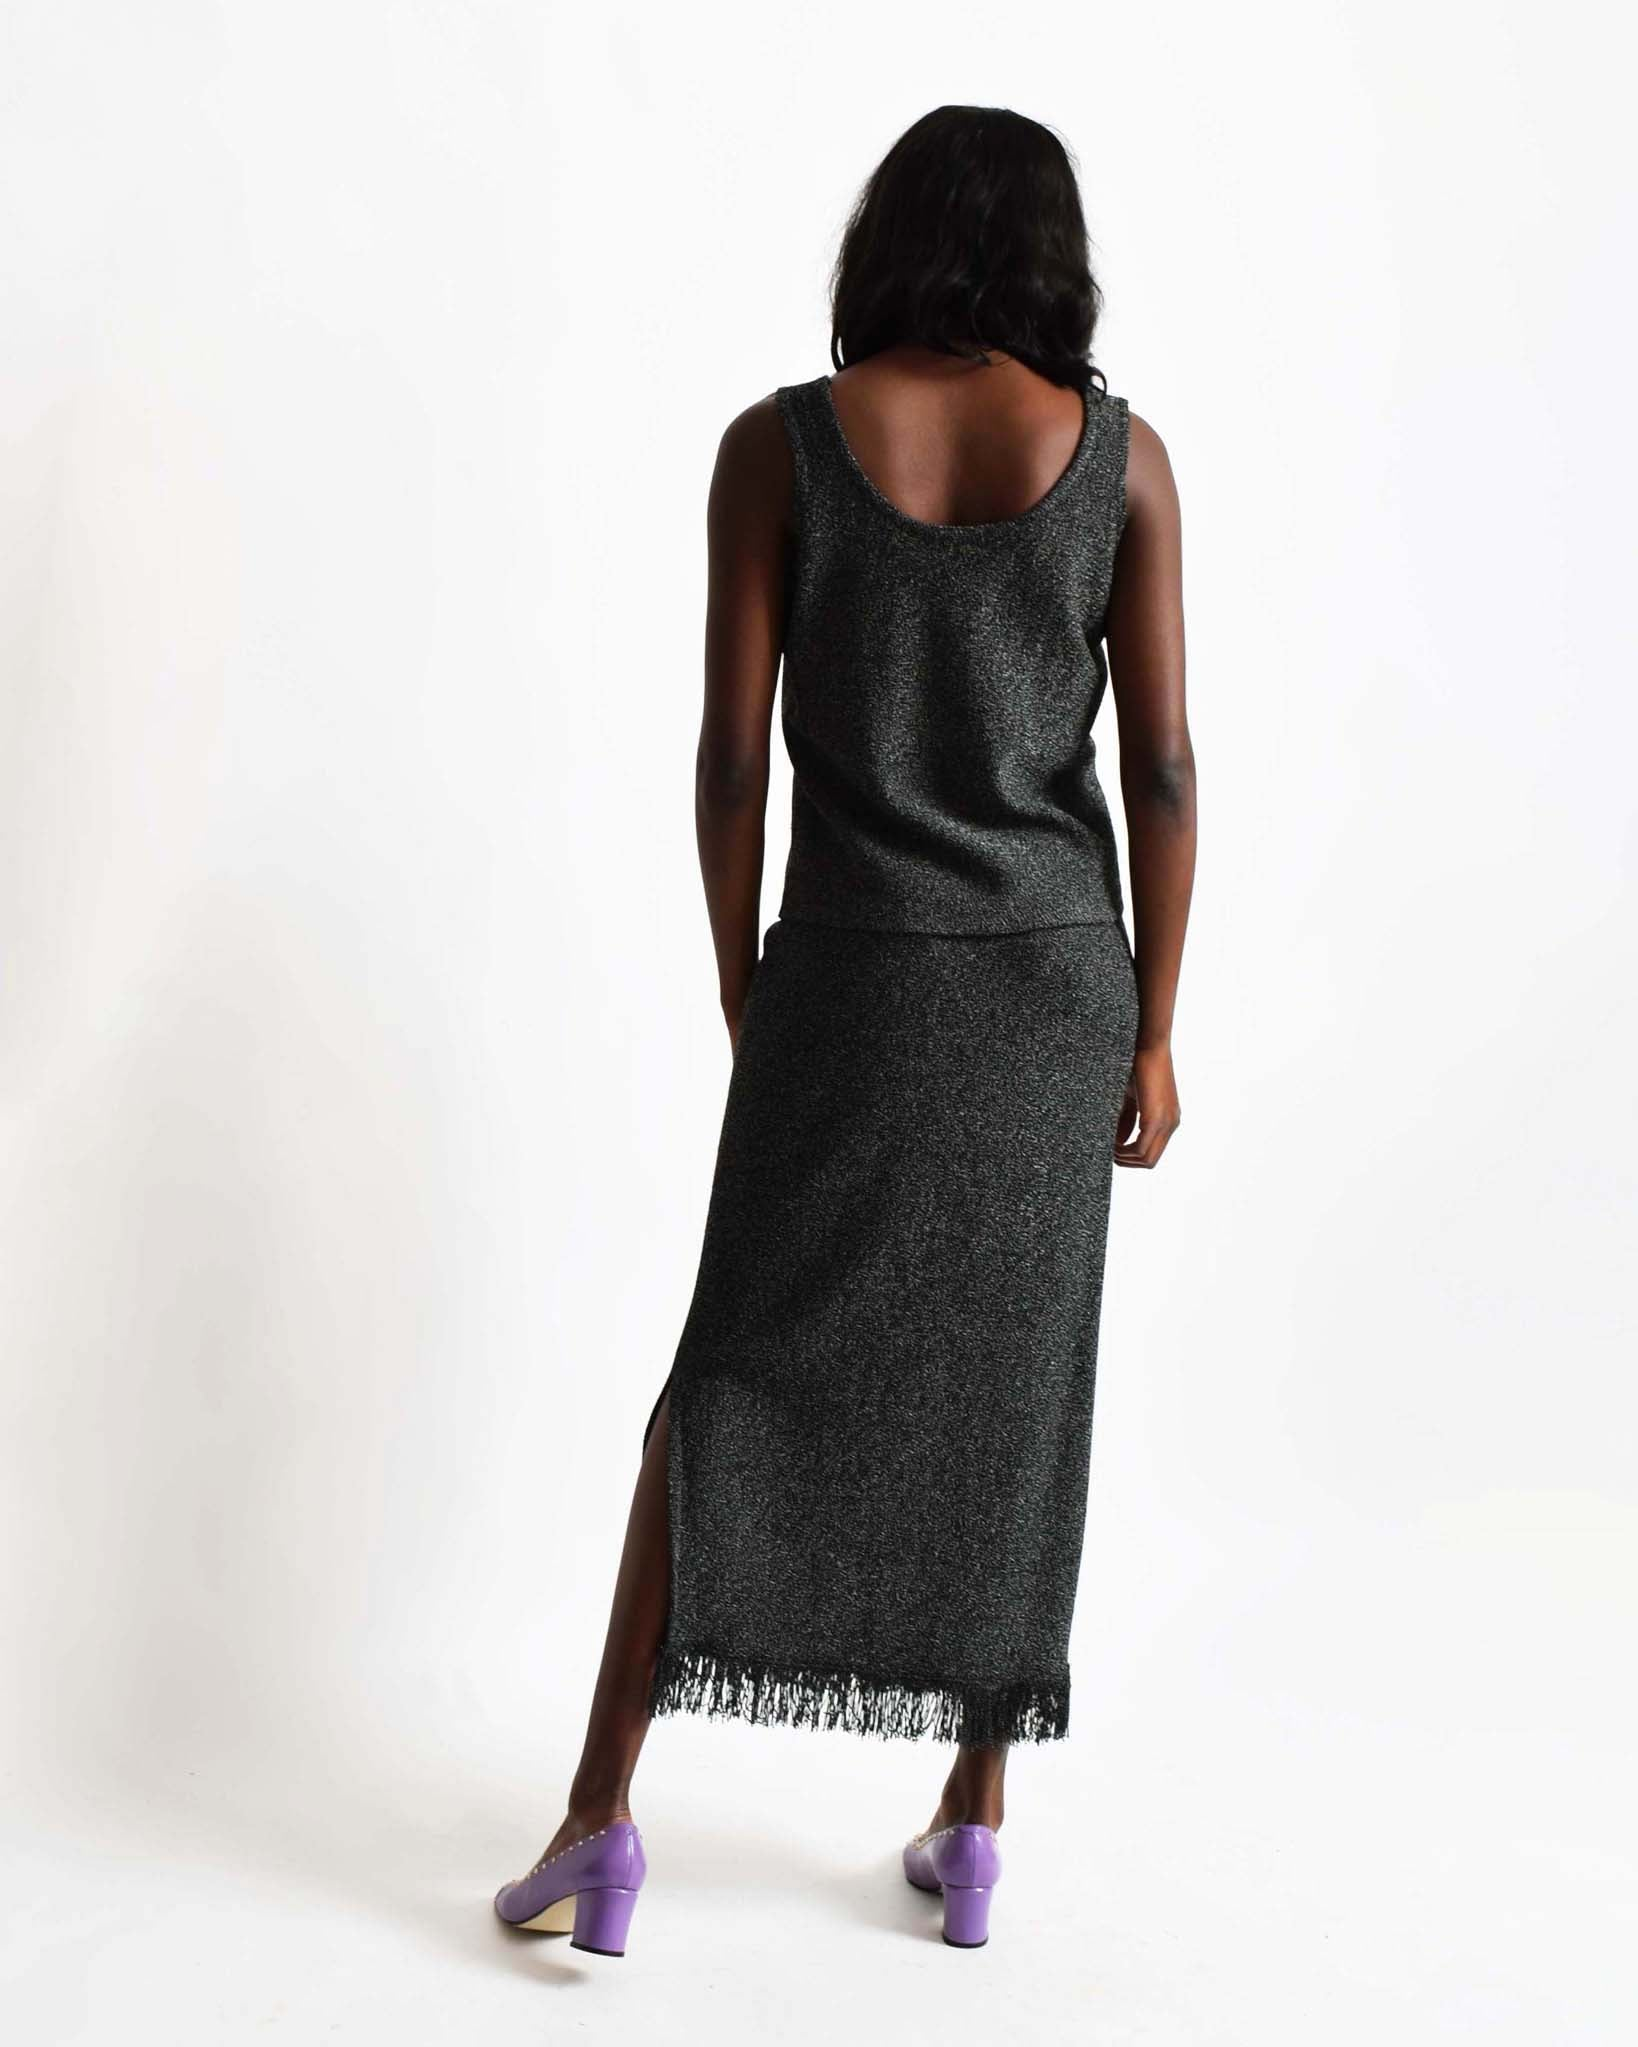 Vintage Charcoal Knit Dress Set